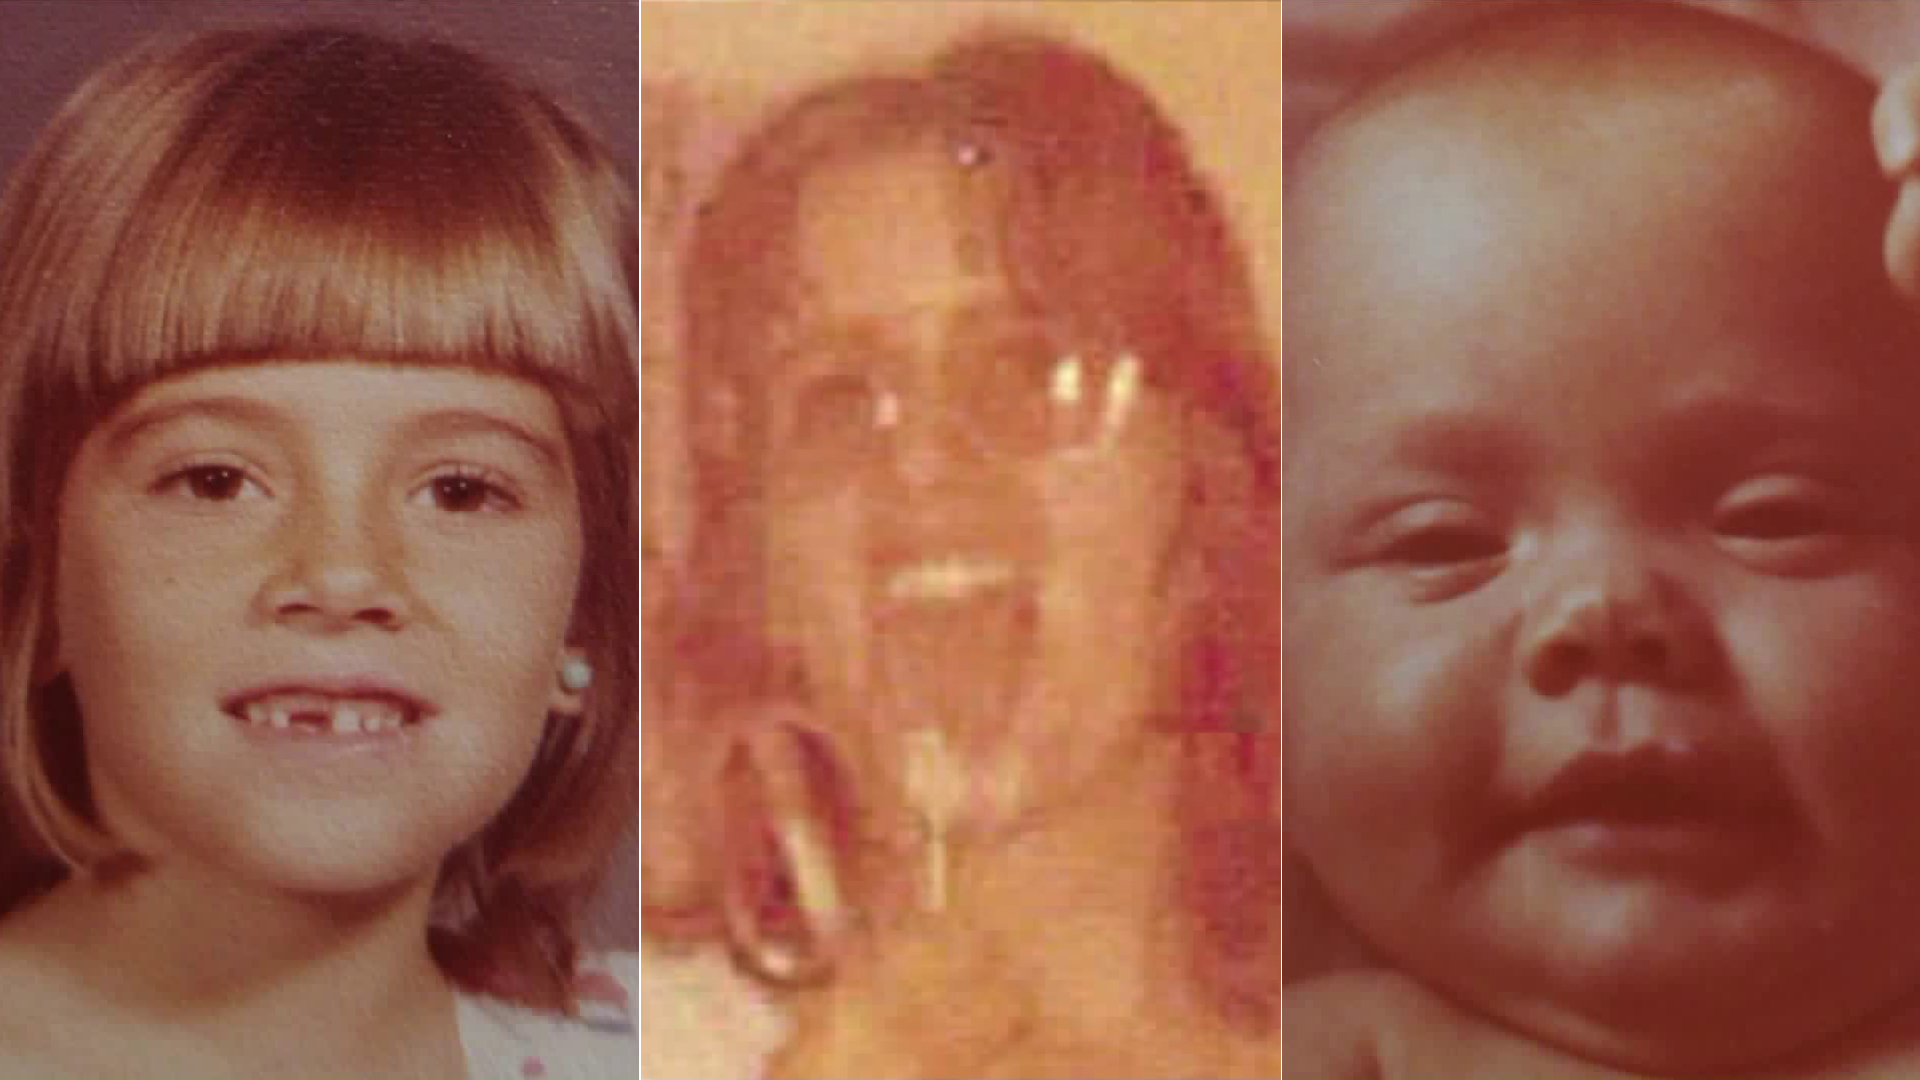 Marlyse Elizabeth Honeychurch, center, her older daughter Marie Elizabeth Vaughn, left, and younger daughter Sarah Lynn McWaters are seen in photos released by the National Center for Missing and Exploited Children.